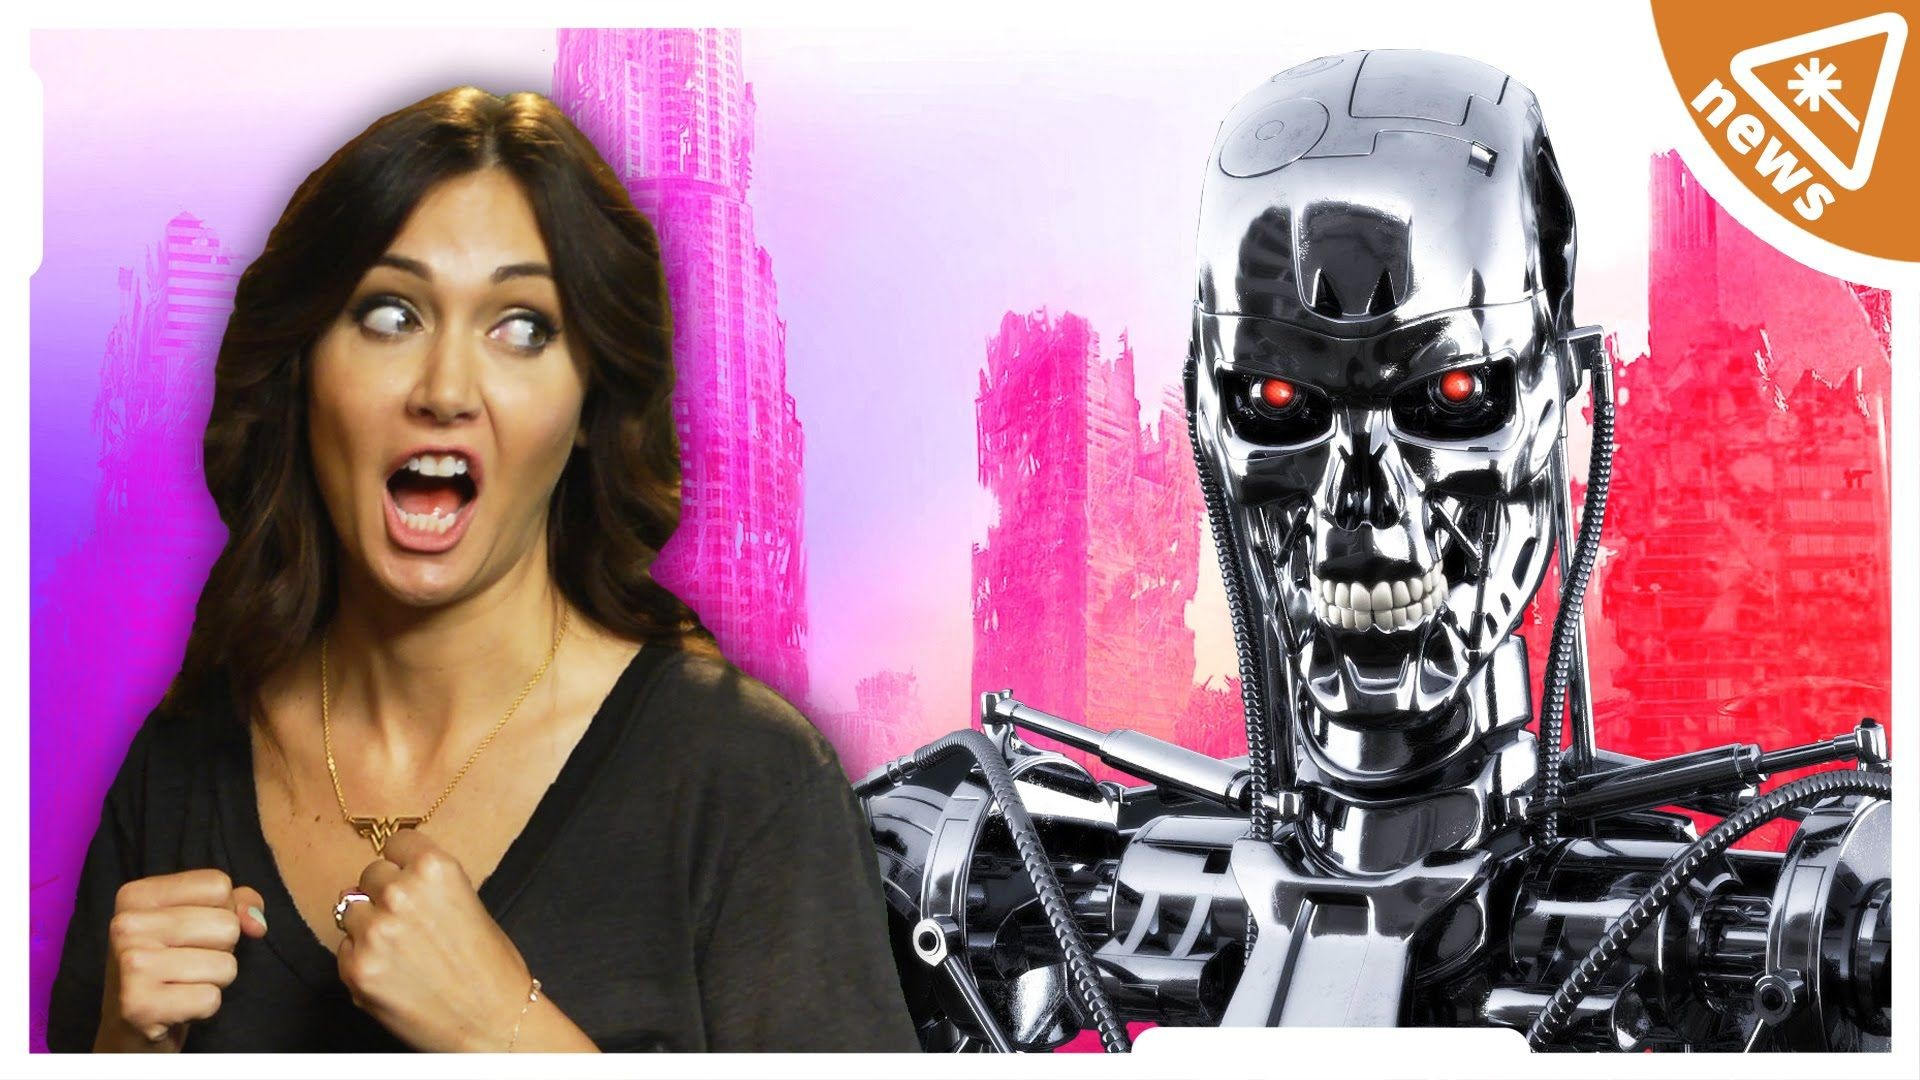 Res: 1920x1080, Jessica chobot